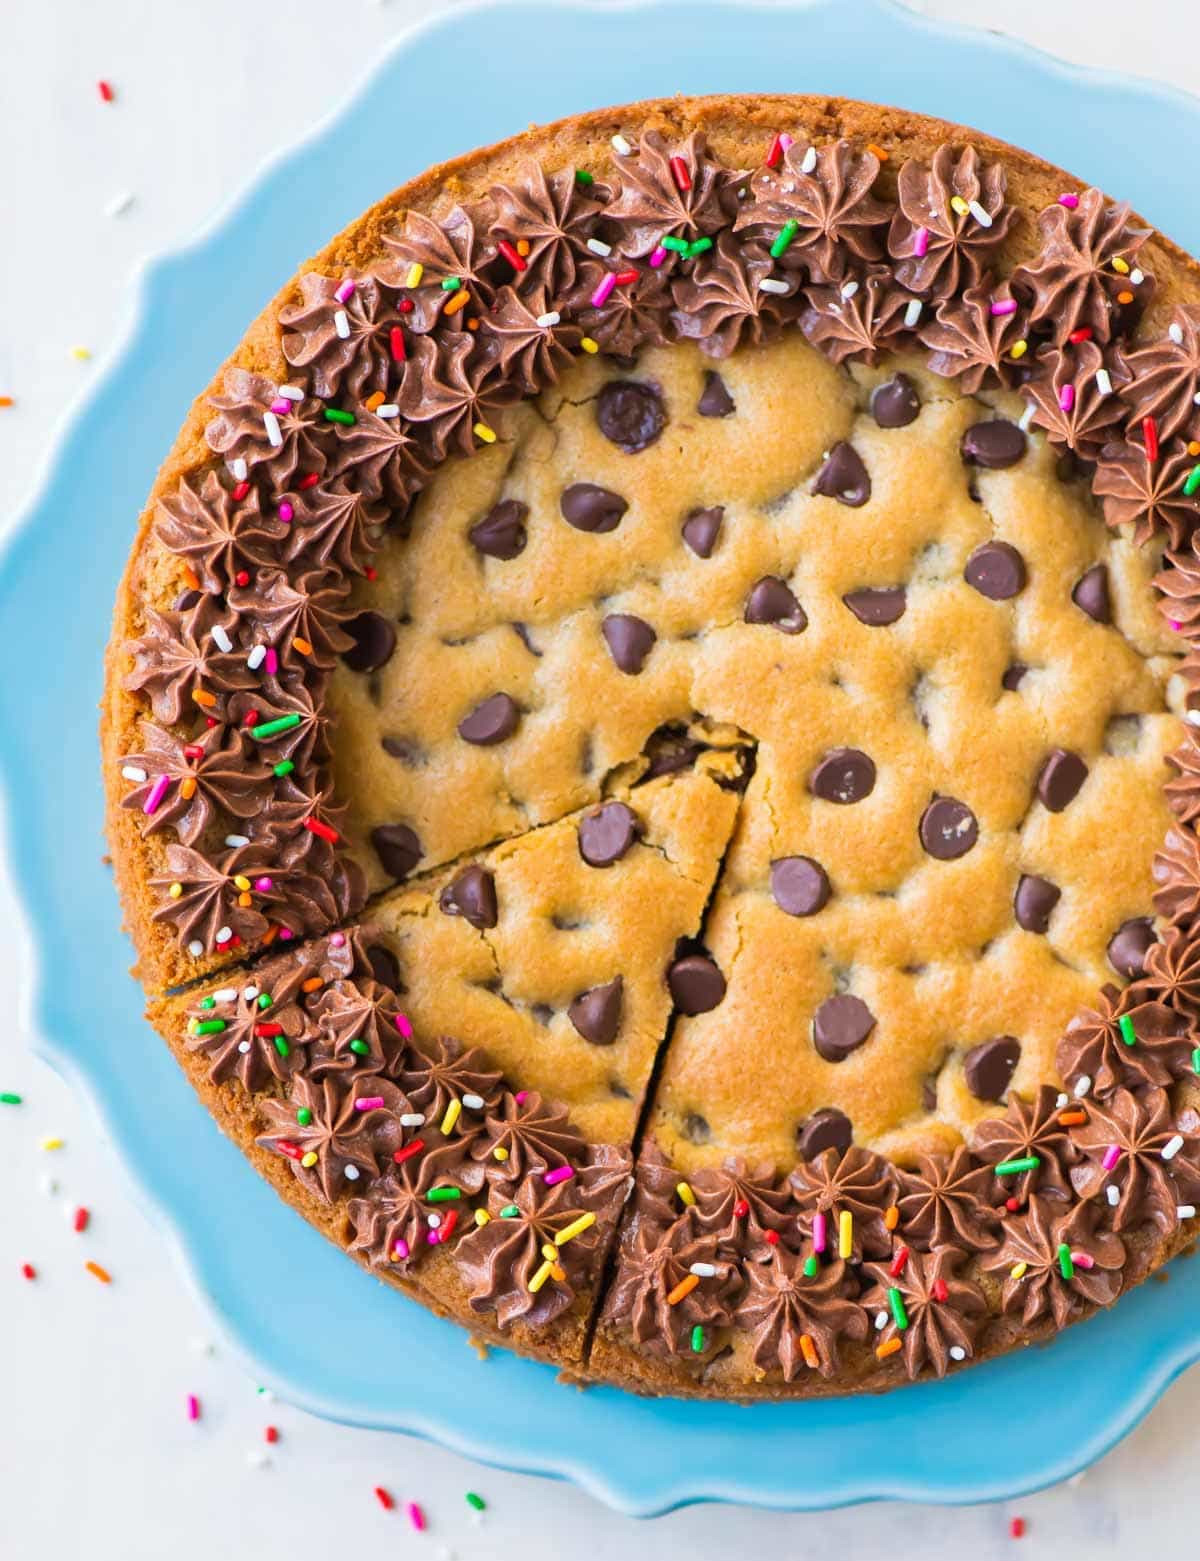 Chocolate Chip Cookie Cake  Chocolate Chip Cookie Cake with Chocolate Fudge Frosting